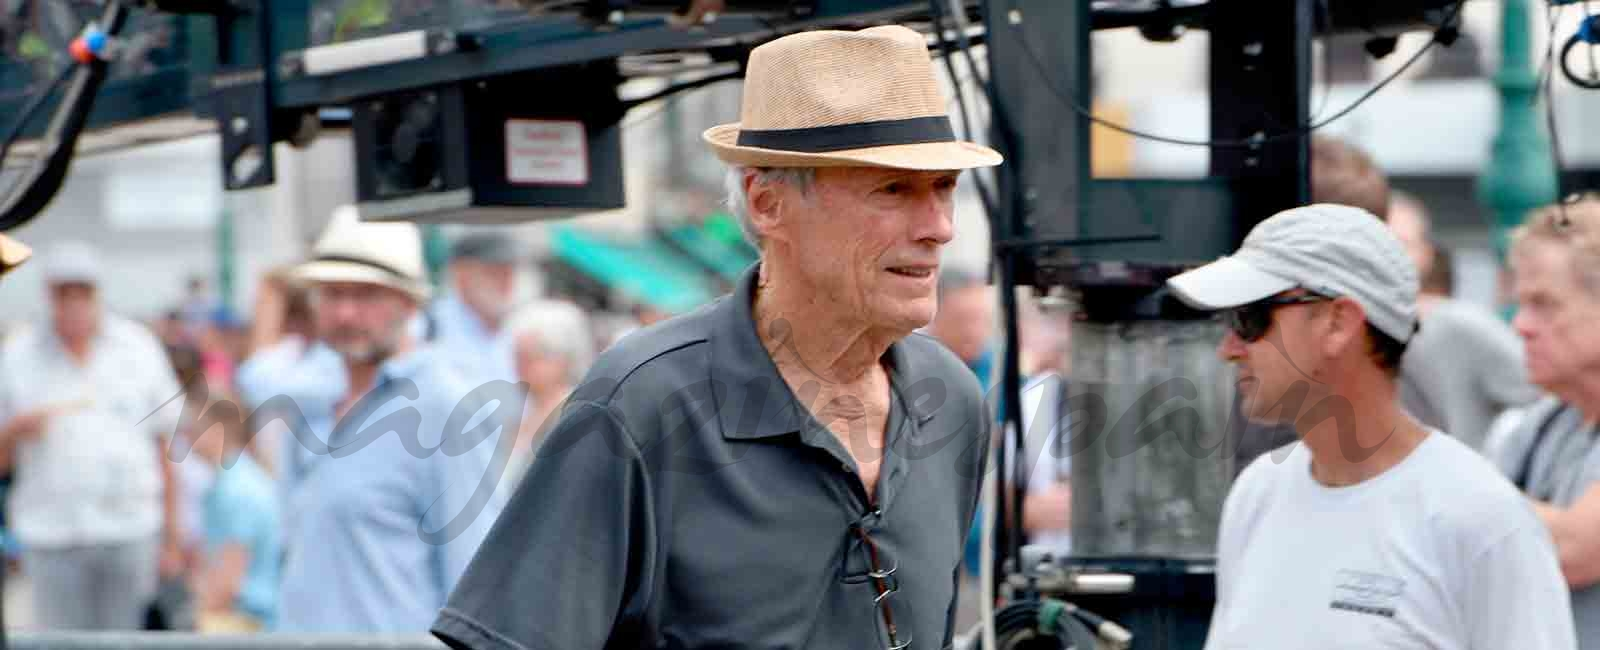 Clint Eastwood, imparable a sus 87 años